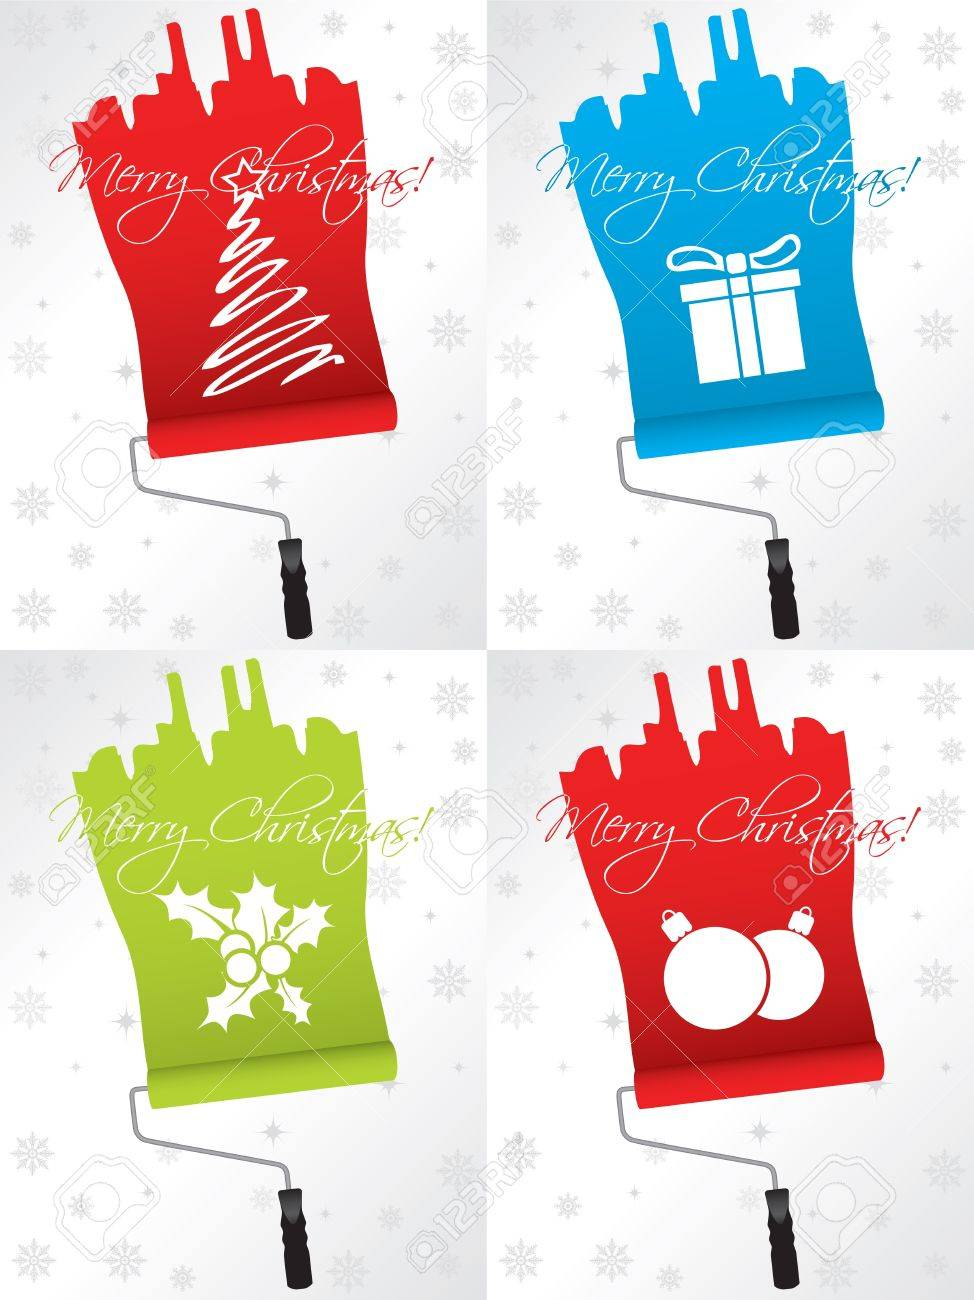 Shifty christmas greeting card designs with paint rollers royalty shifty christmas greeting card designs with paint rollers stock vector 10697038 kristyandbryce Gallery